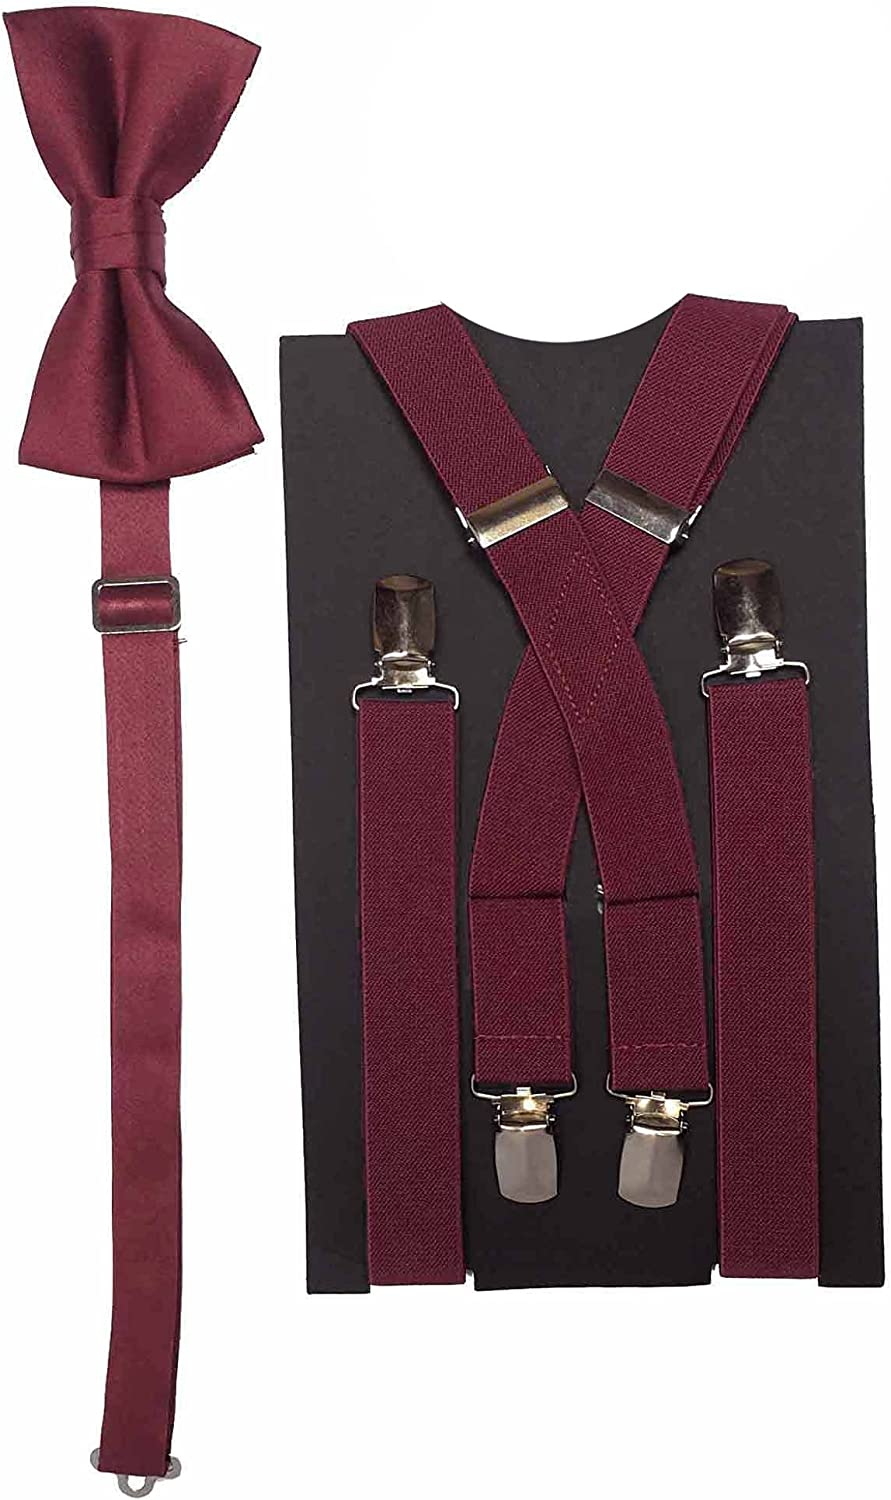 Spencer J's Men's X Back Suspenders Set of Bowtie Raleigh Mall Colo Max 40% OFF Variety